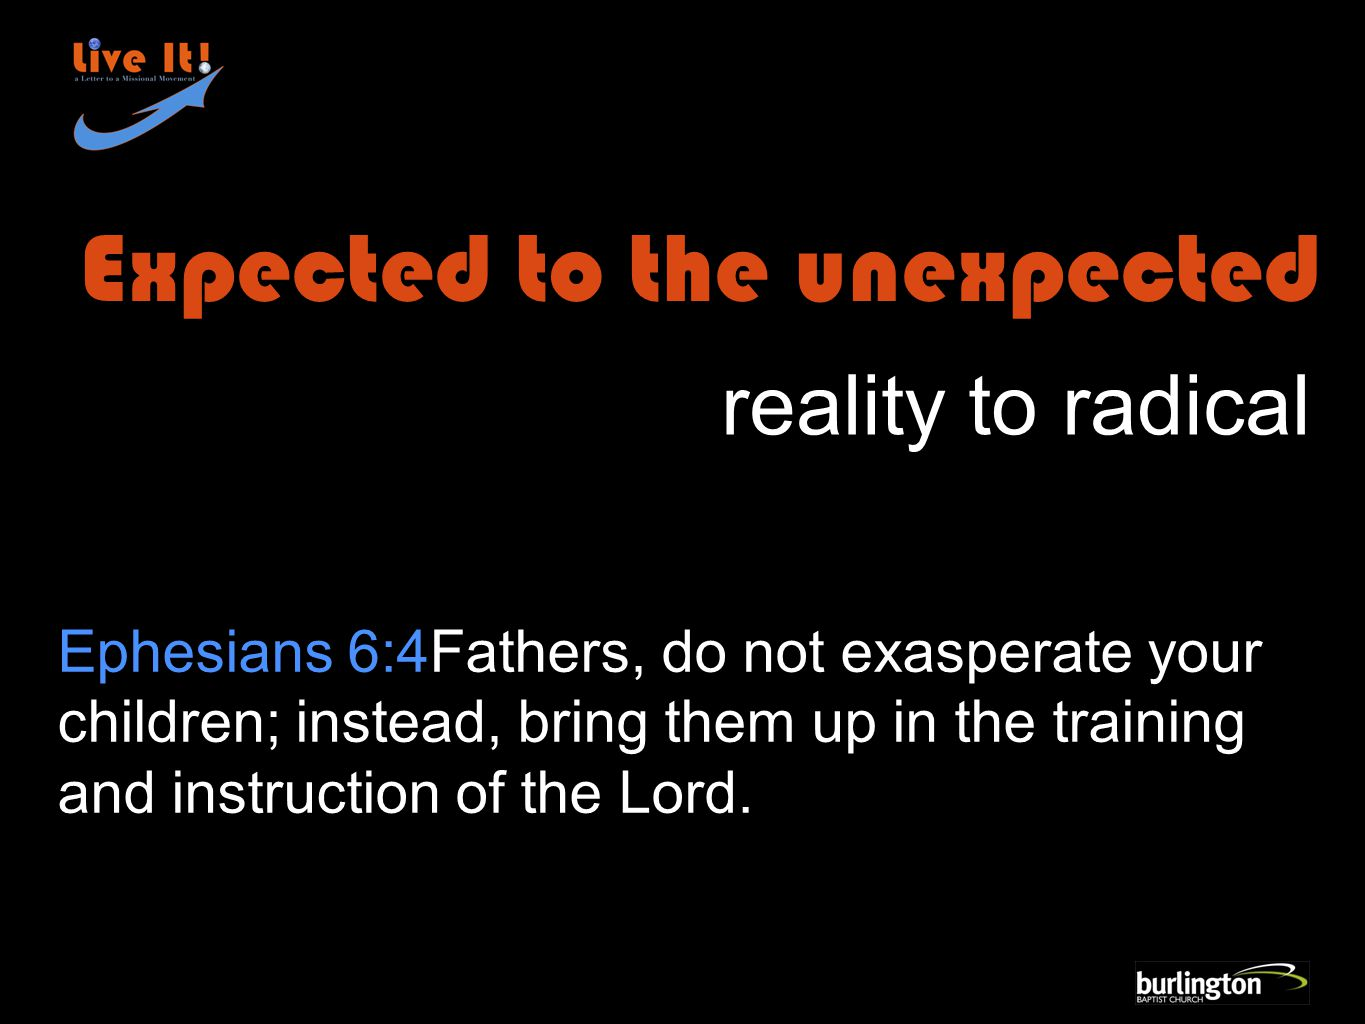 Ephesians 6:4Fathers, do not exasperate your children; instead, bring them up in the training and instruction of the Lord.